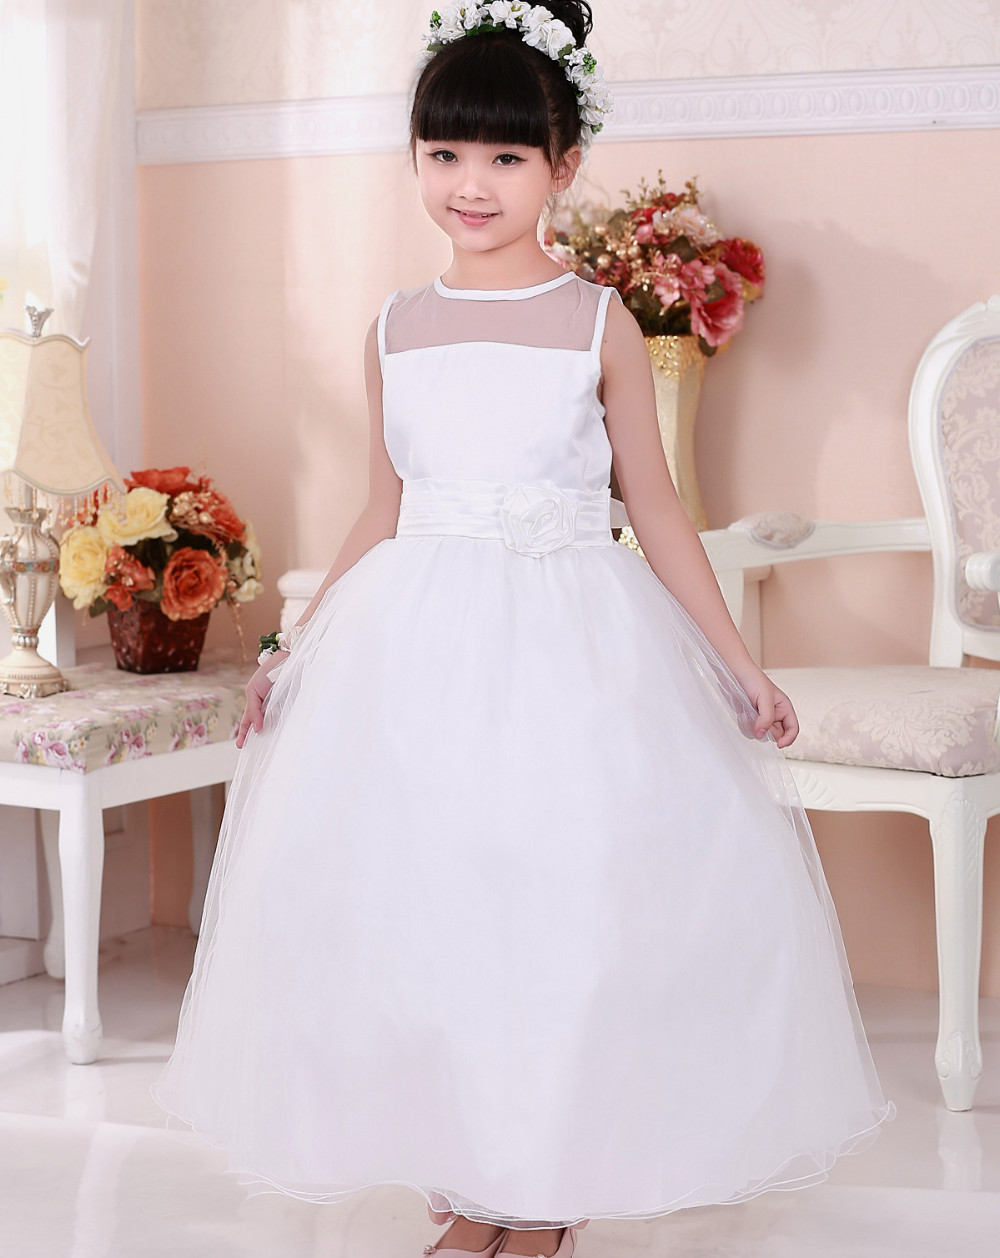 2015 New Girls Dress White Flower Belt Tulle Ankle-length Party Wedding Pageant Bridesmaid Princes Kids Clothing